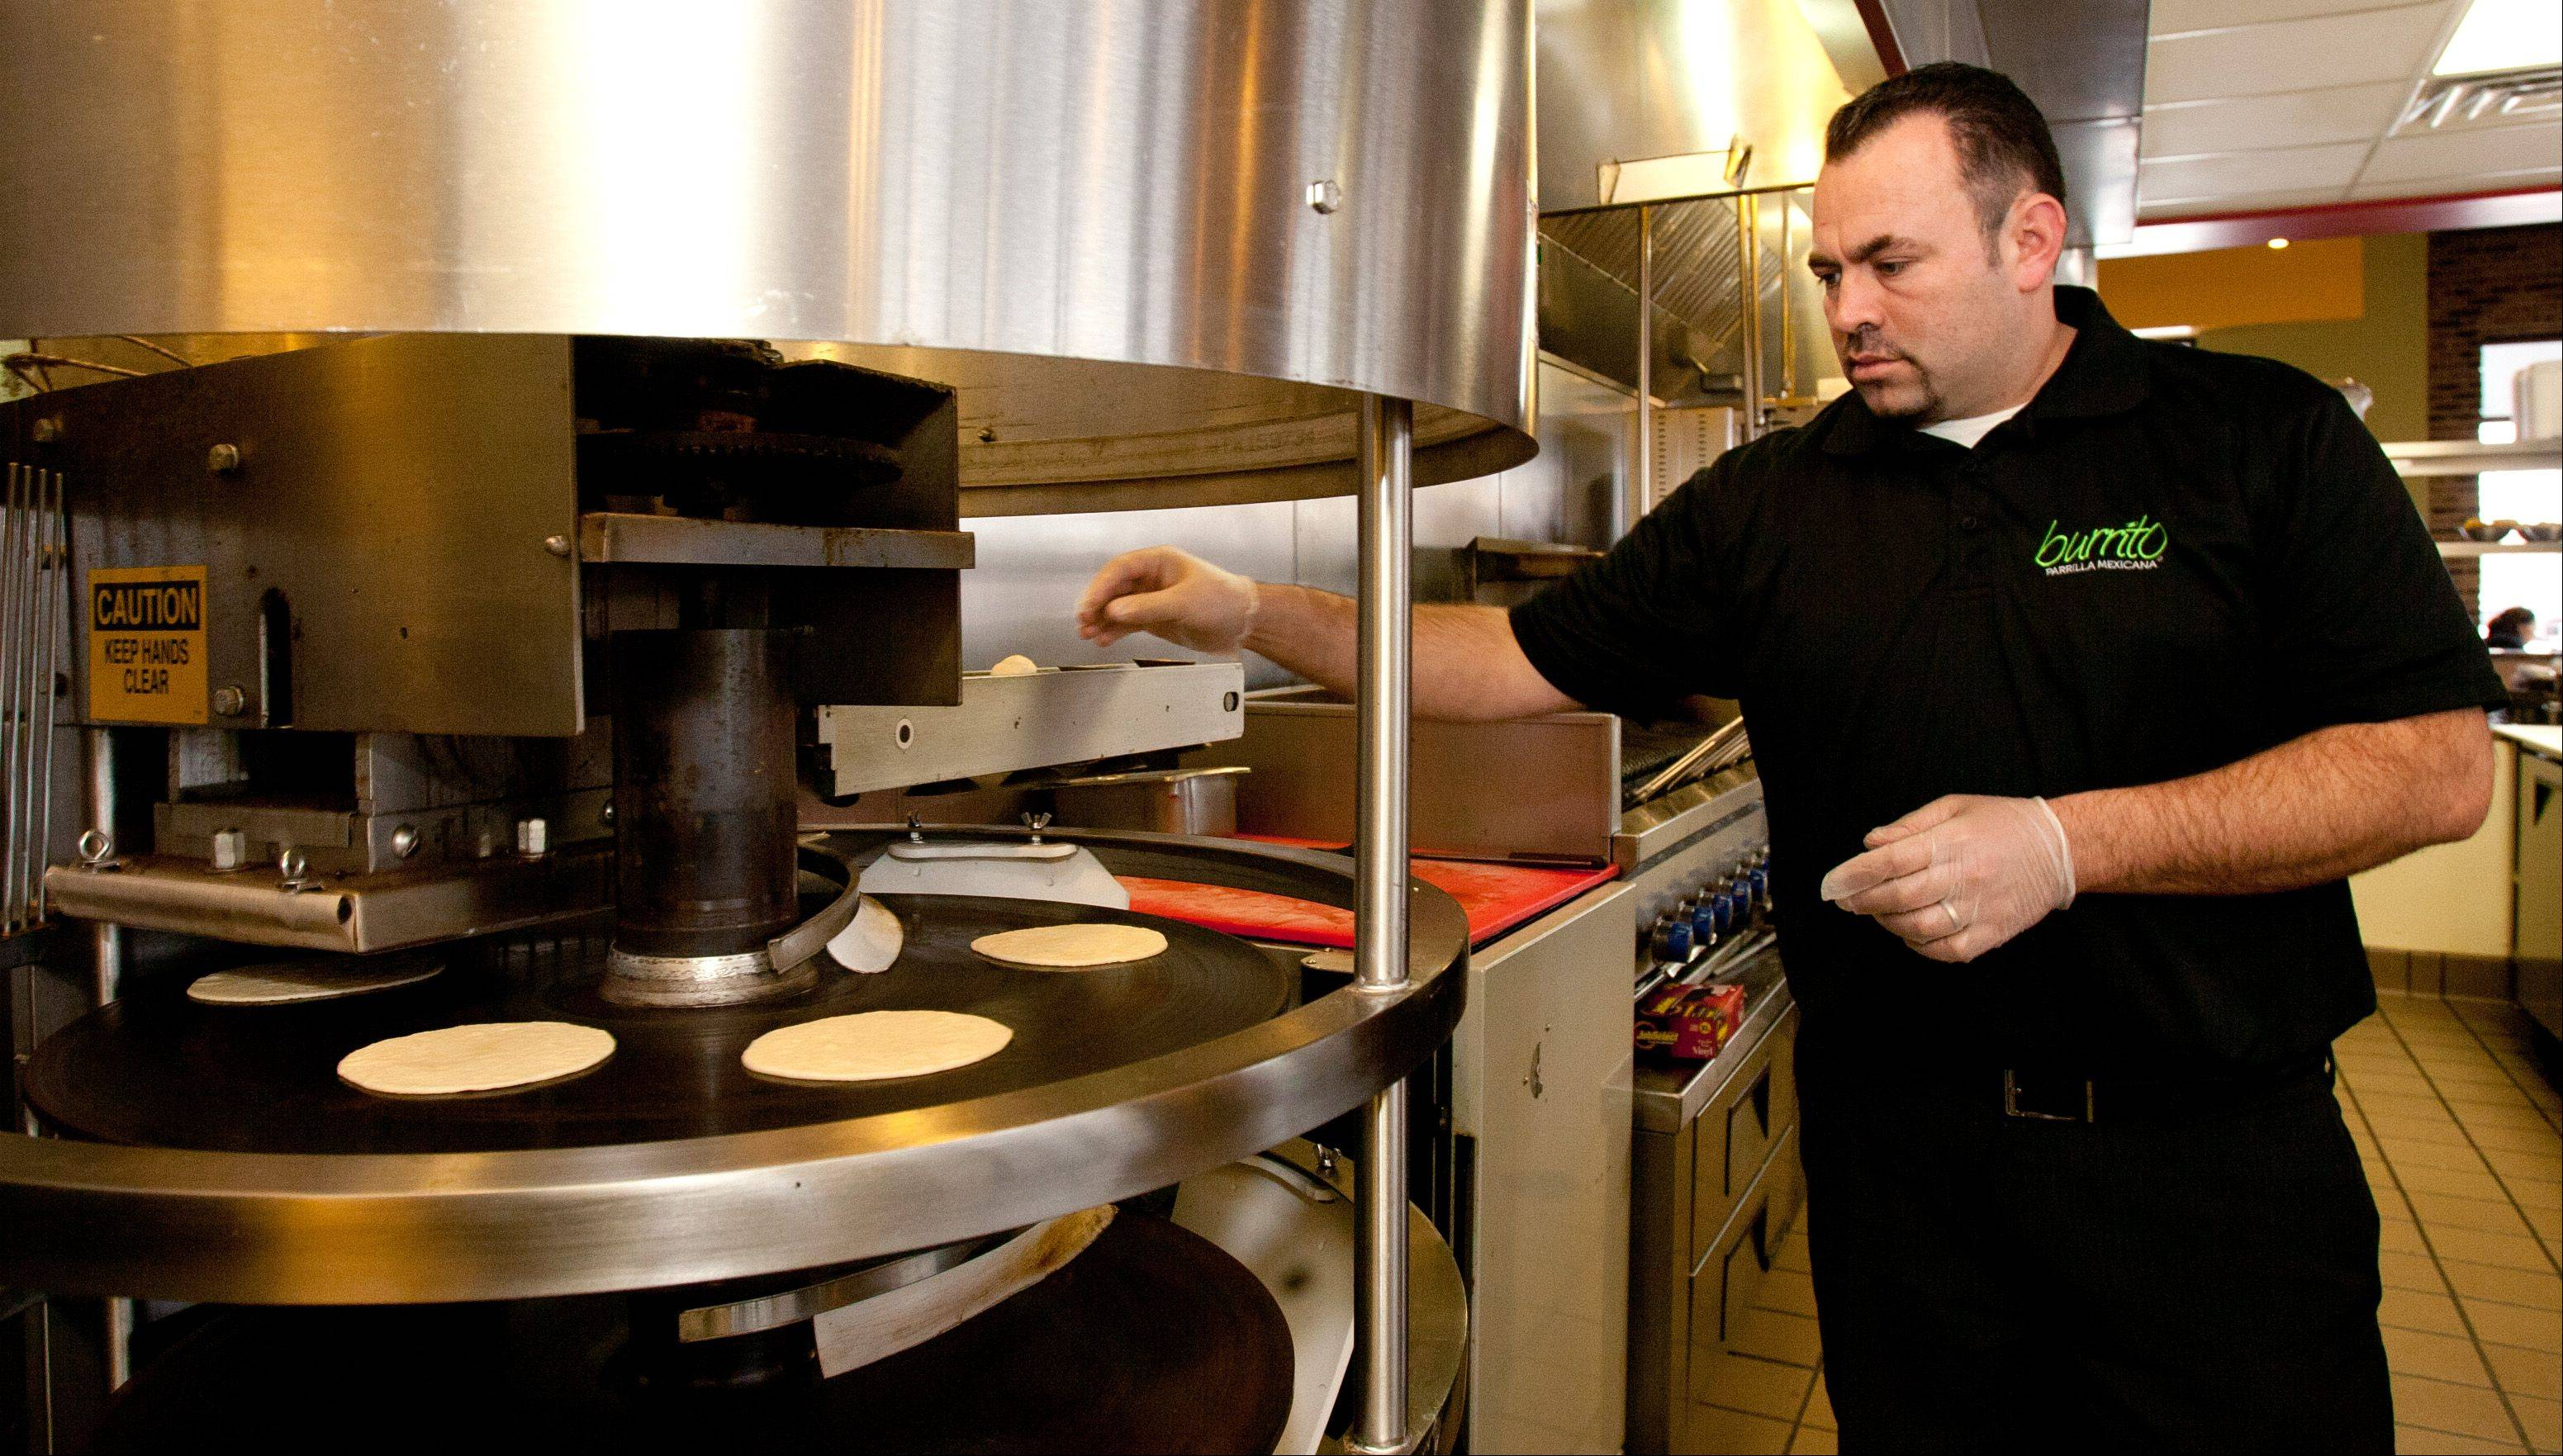 Burrito Parrilla Mexicana owner David Perez monitors a tortilla maker.